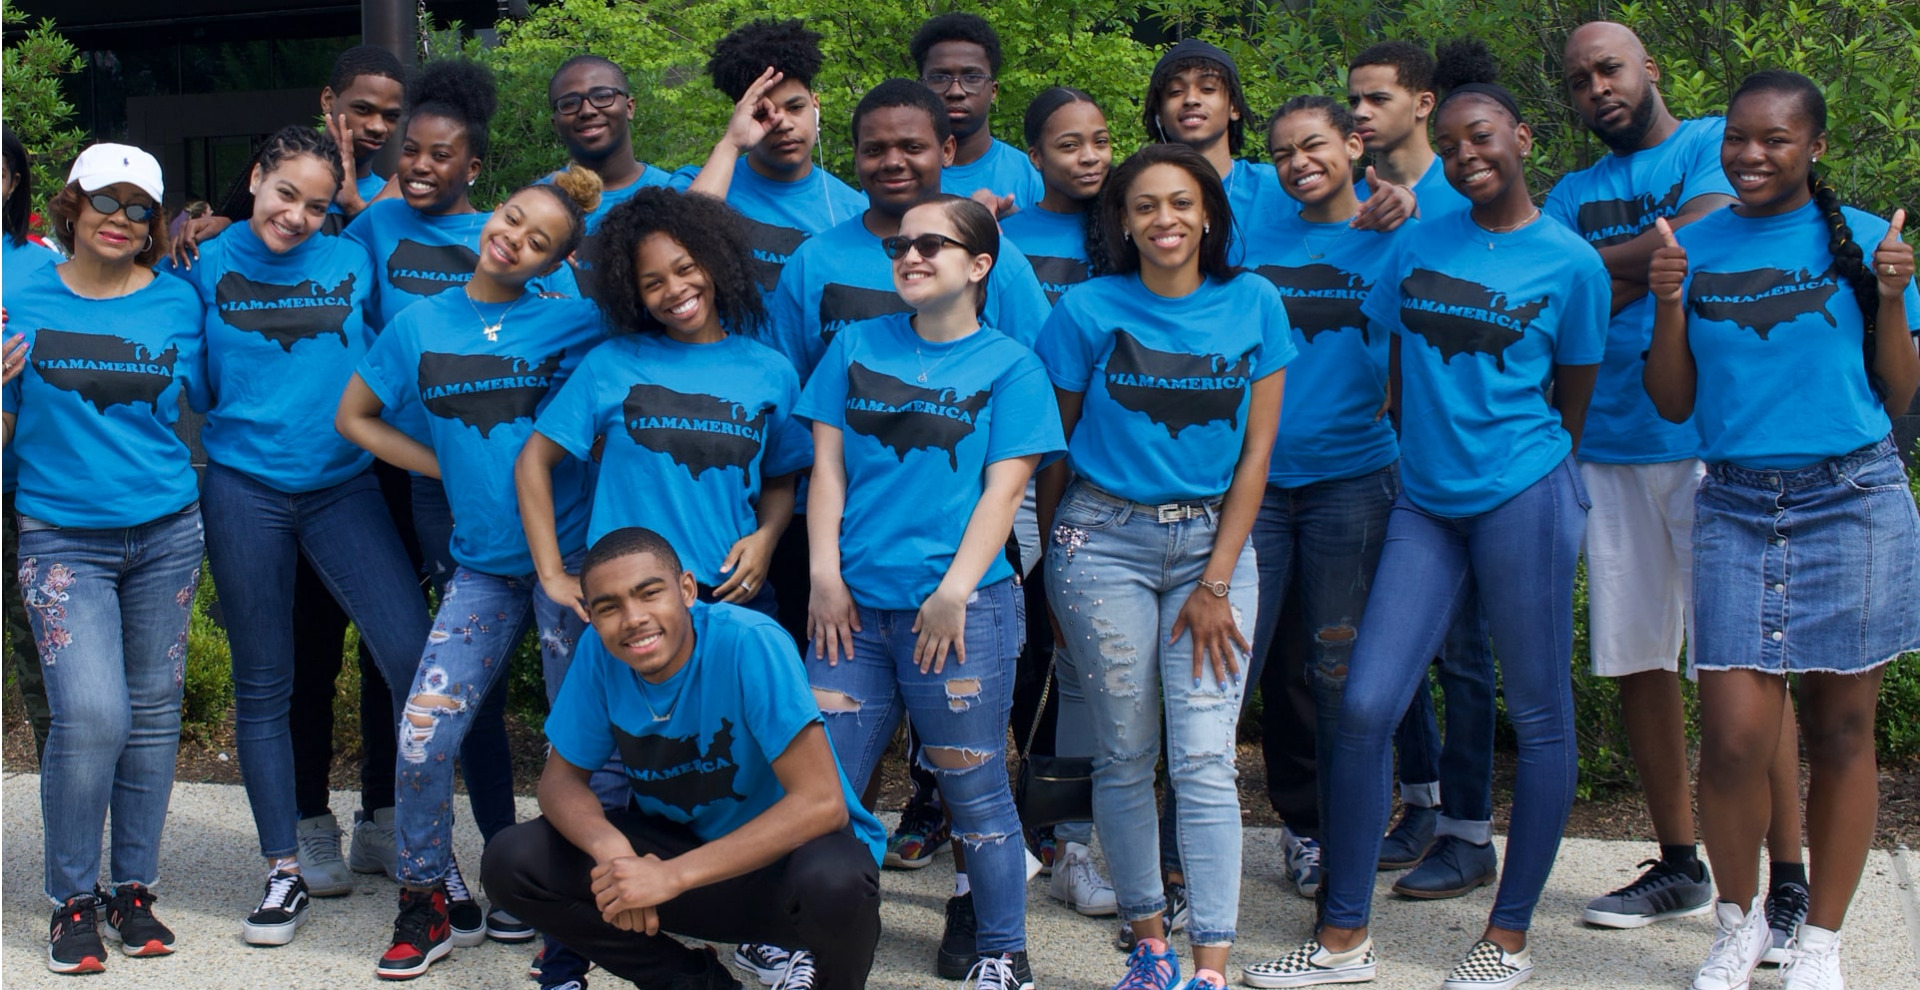 Common Ground Foundation youth and leaders gathered together.